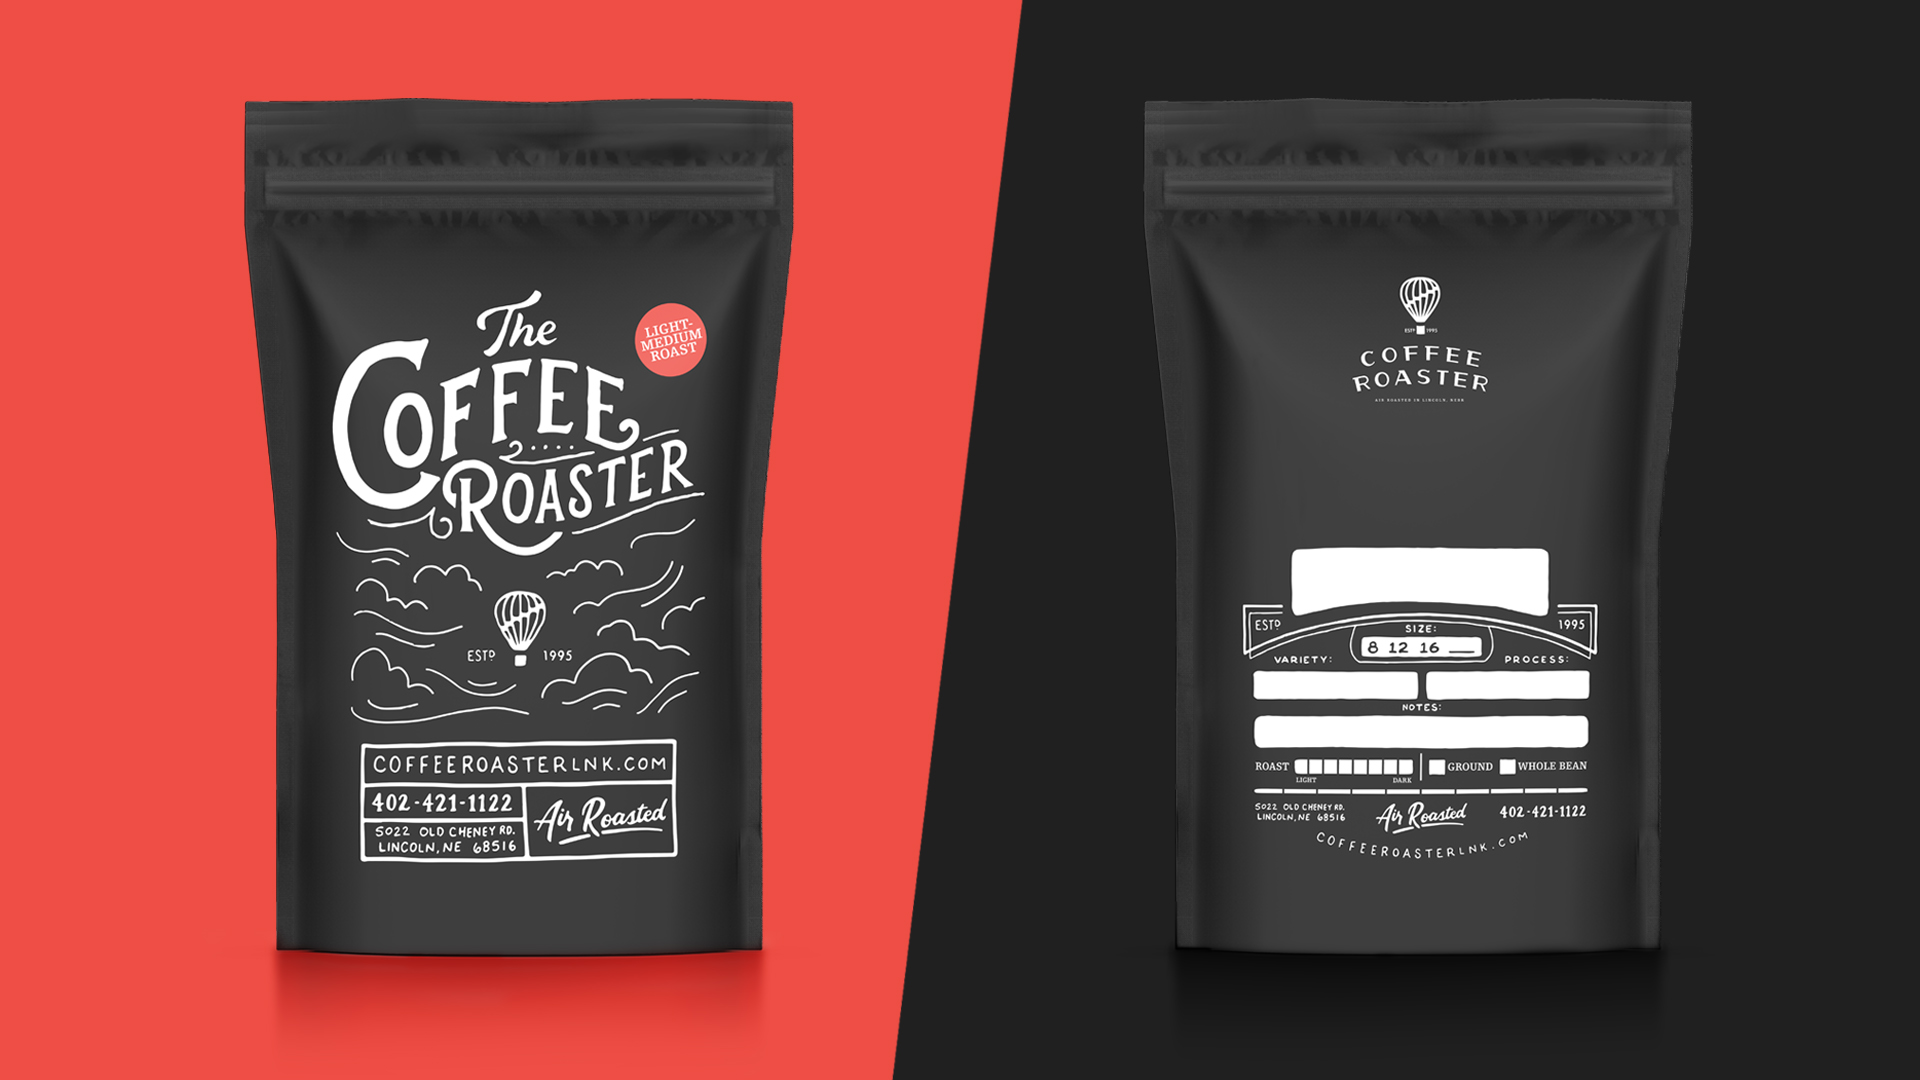 The Coffee Roaster coffee bag package design